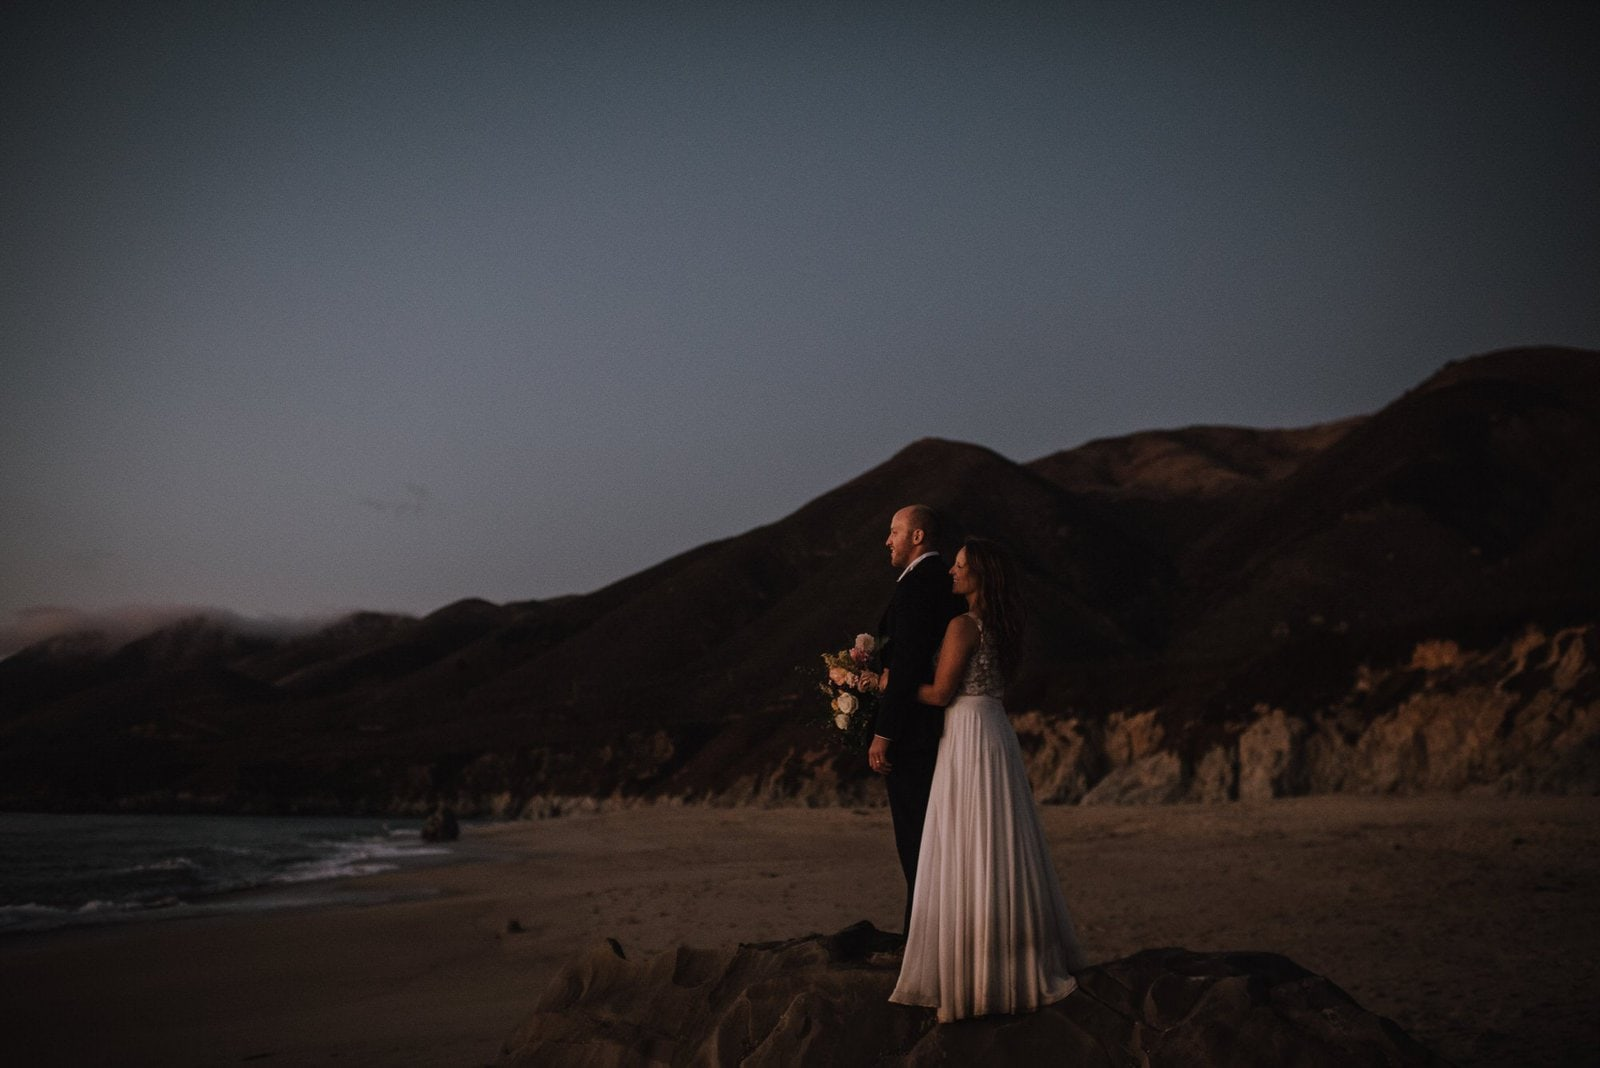 nighttime in the big sur